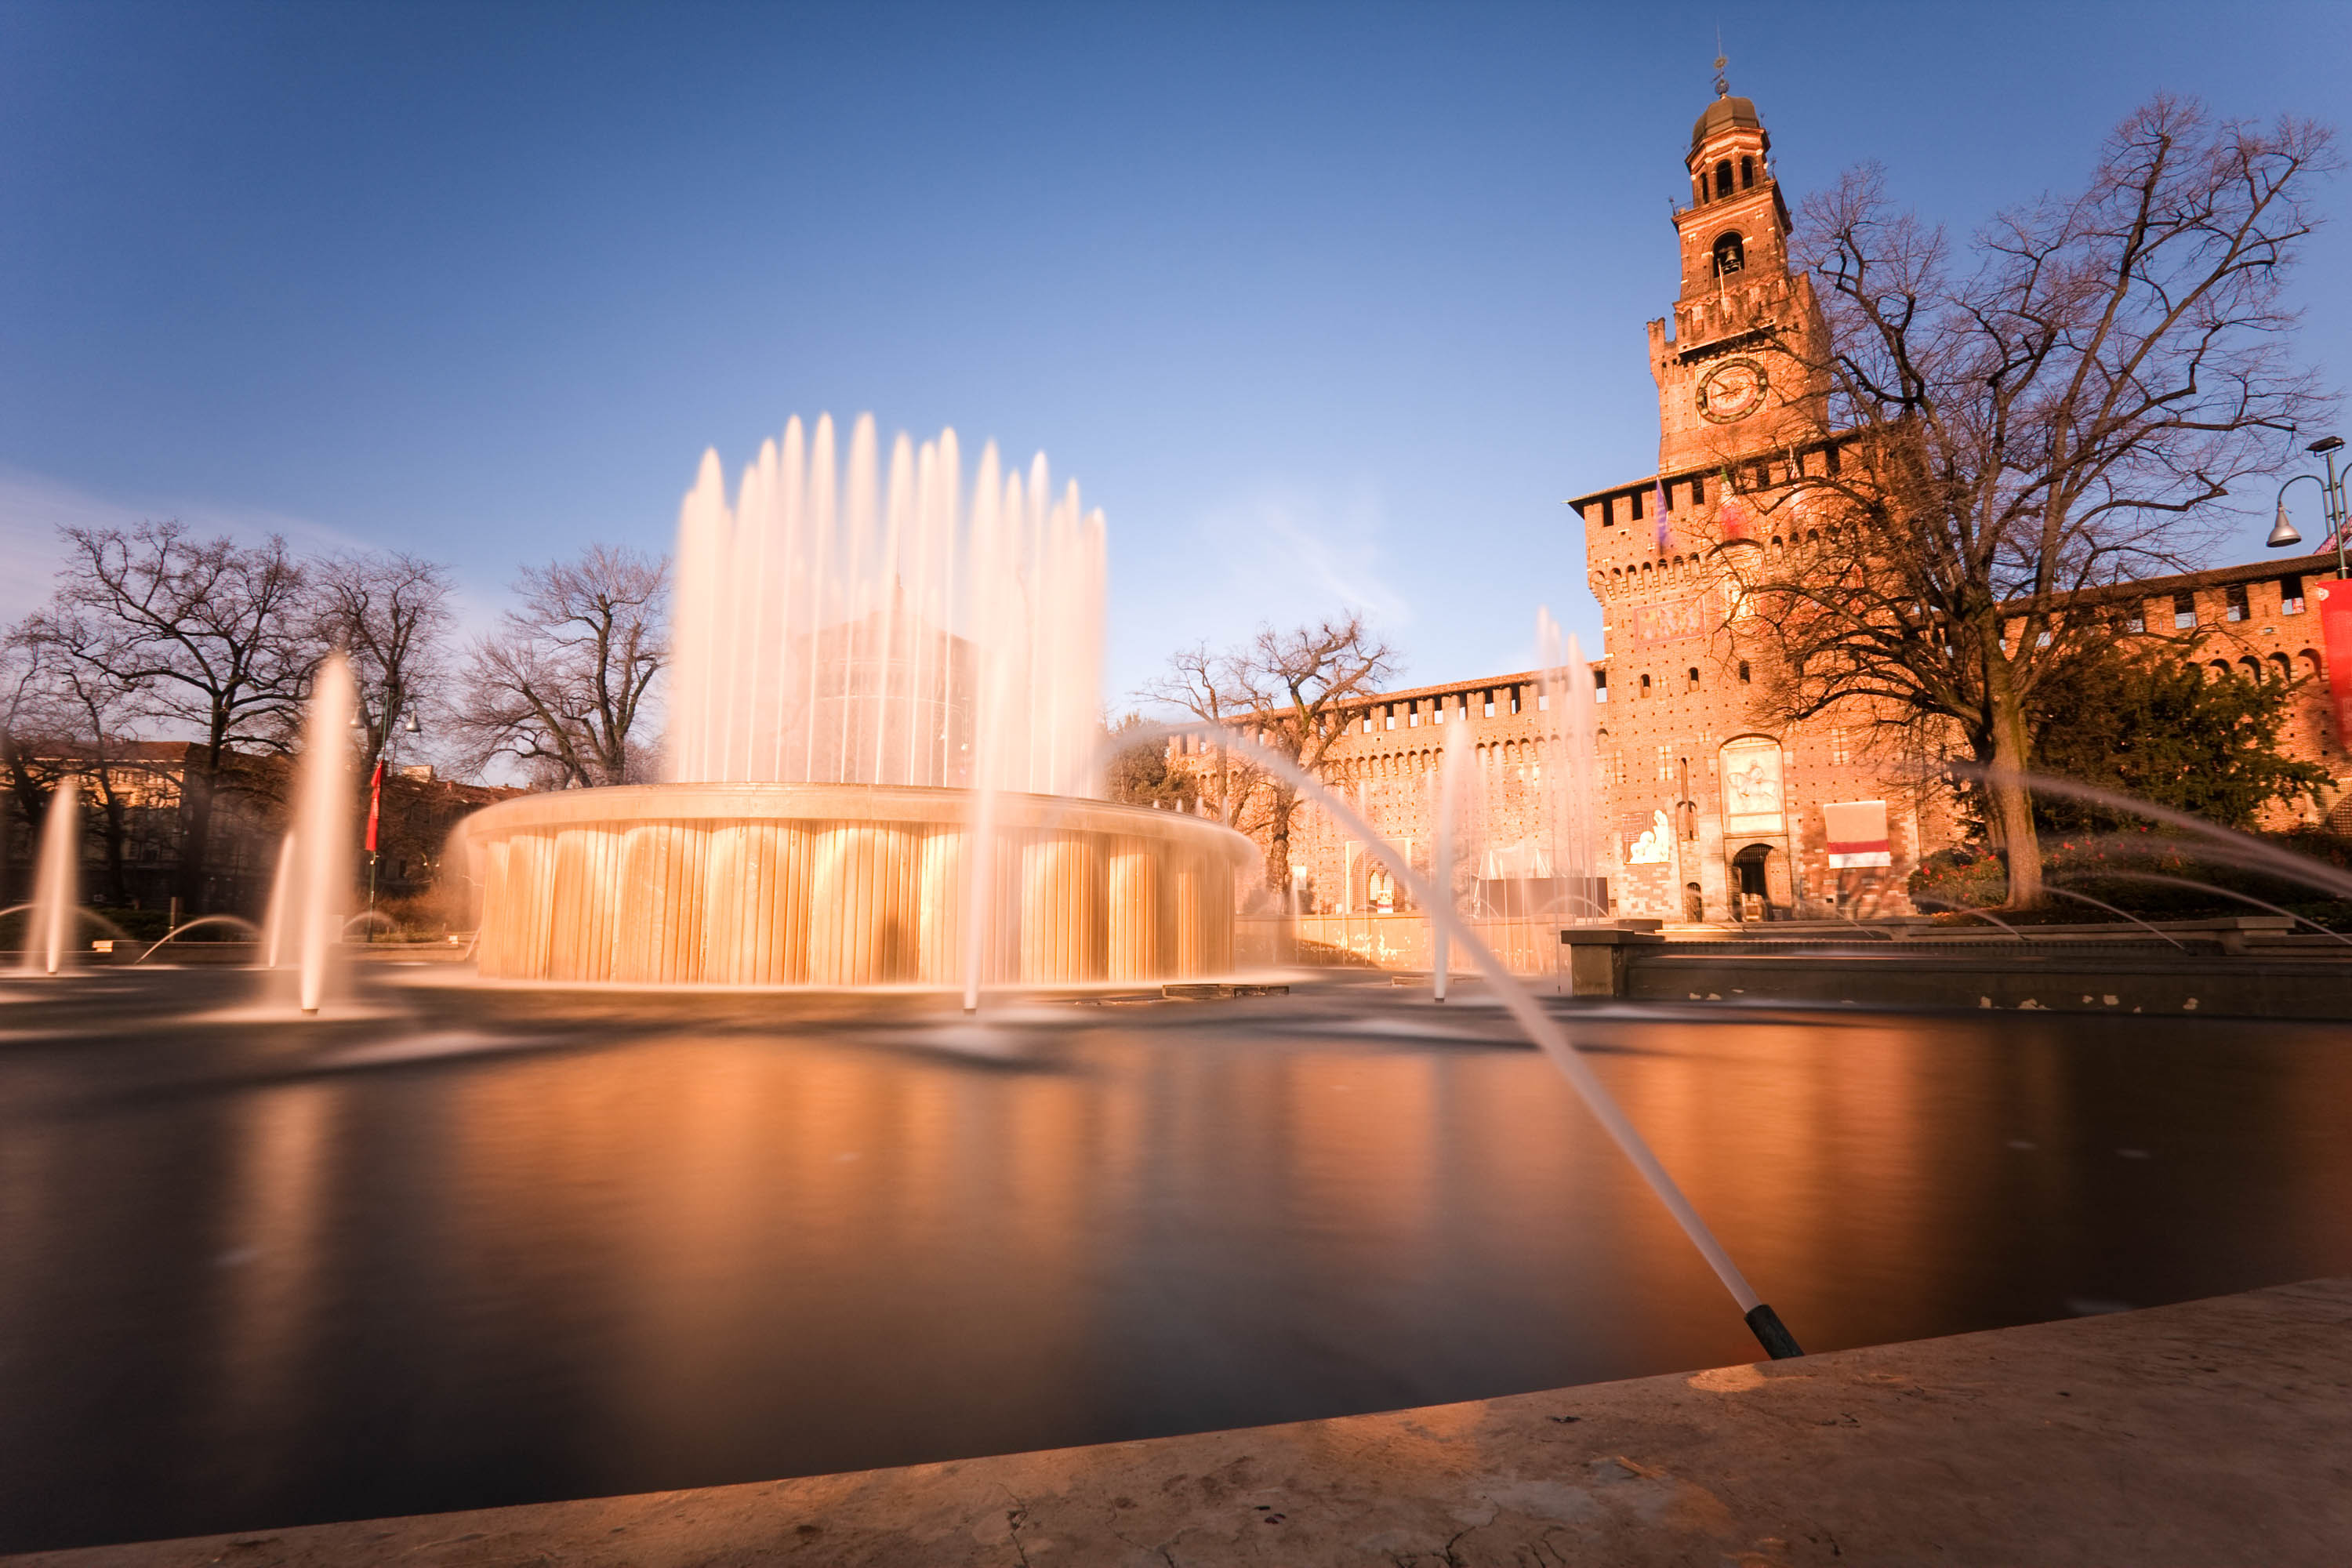 Castello Sforzesco in Milan,using nd filter to allow longer exposures.